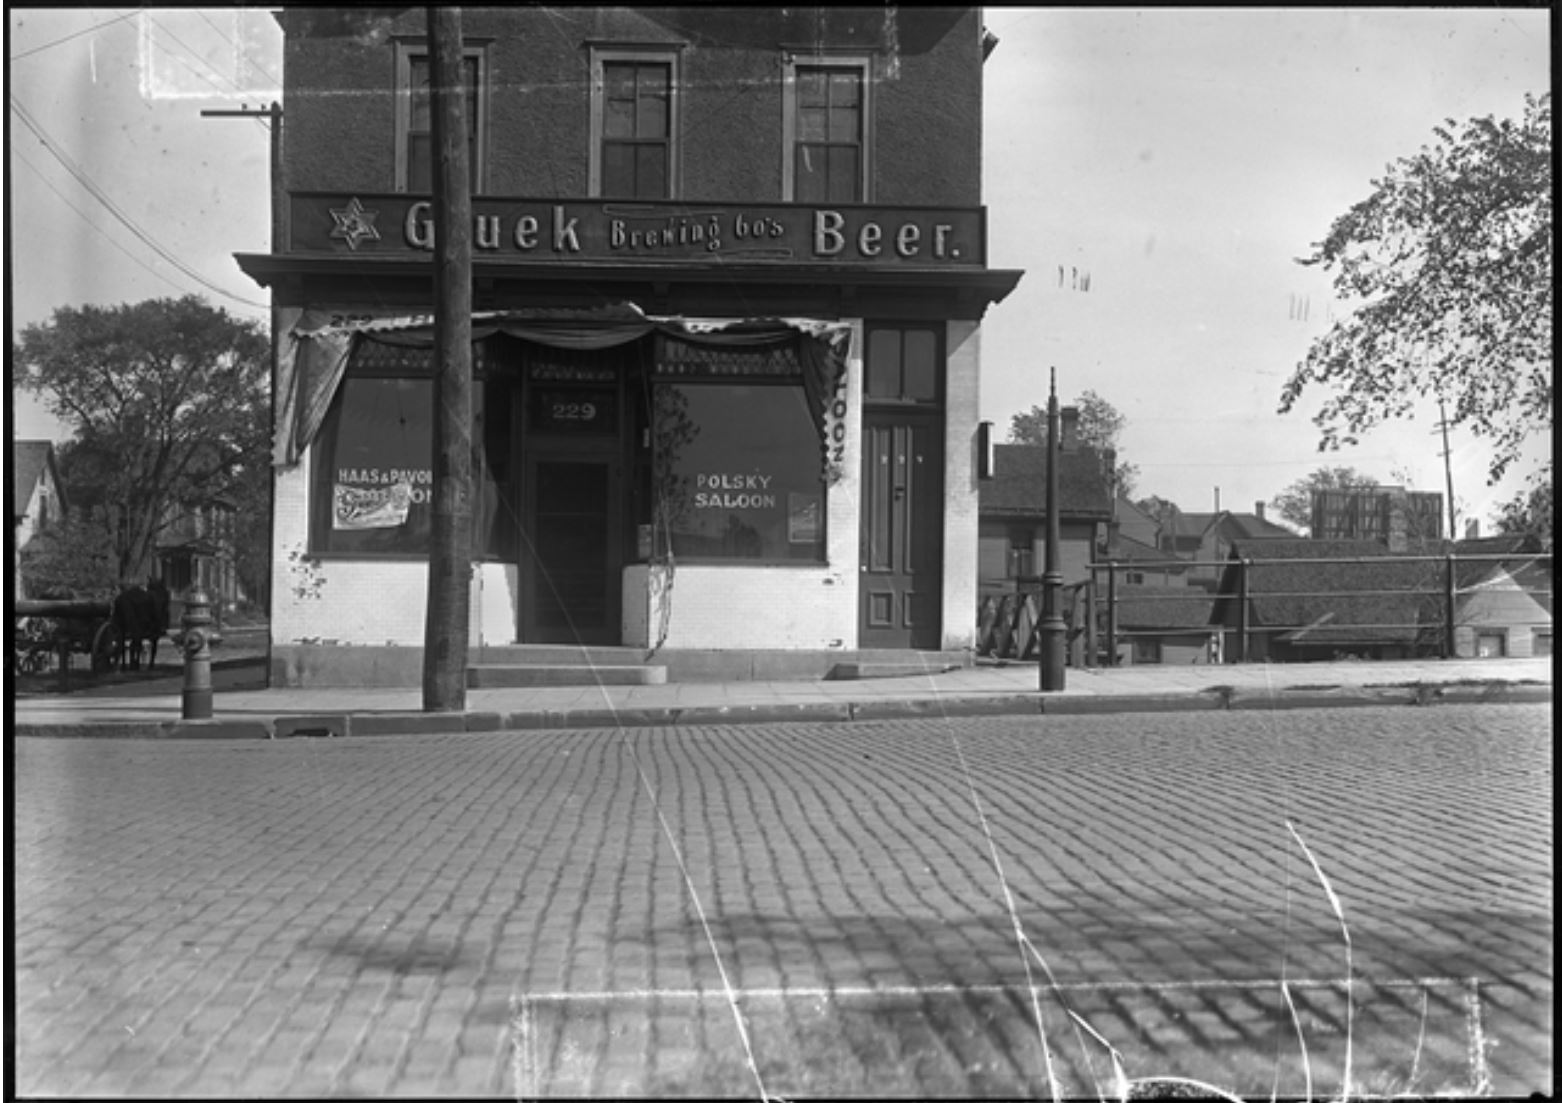 The Polsky Saloon in 1919 at 225 Main Street NE (image courtesy of the Minnesota Historical Society)